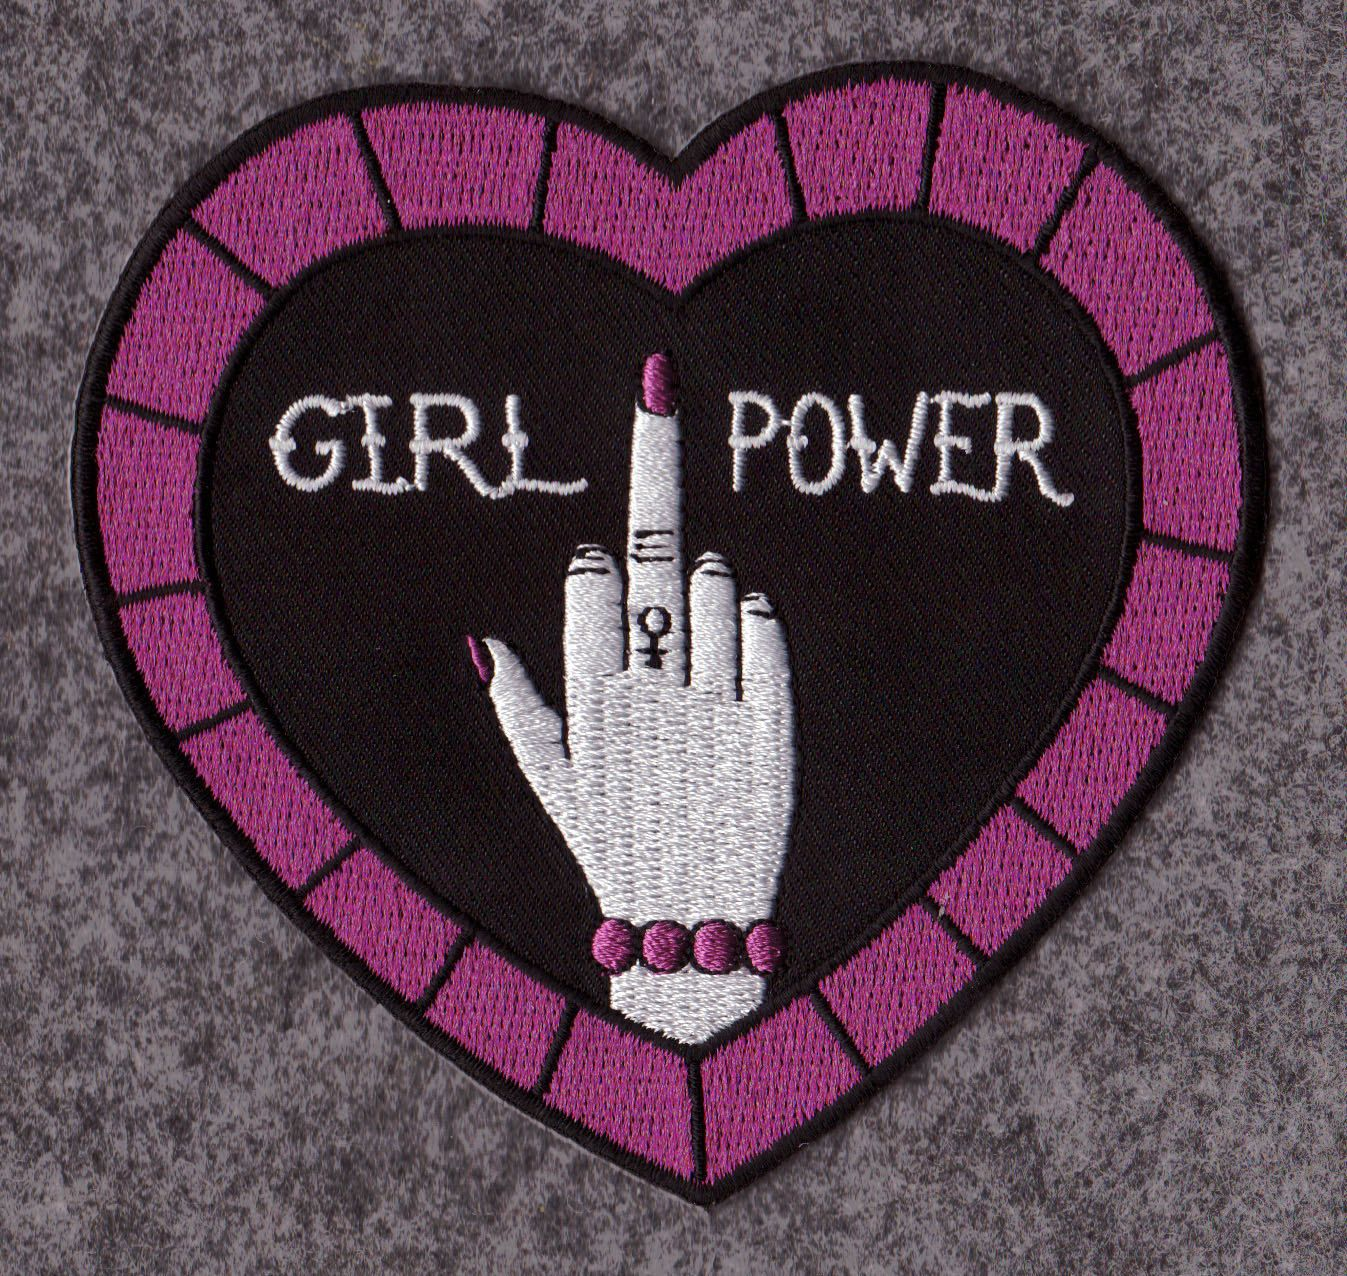 Girlpower feminist iron-on embroidered patch - women's liberation, girl power, art, hand-lettering, punk, hand-drawn, political by prettythingslive on Etsy